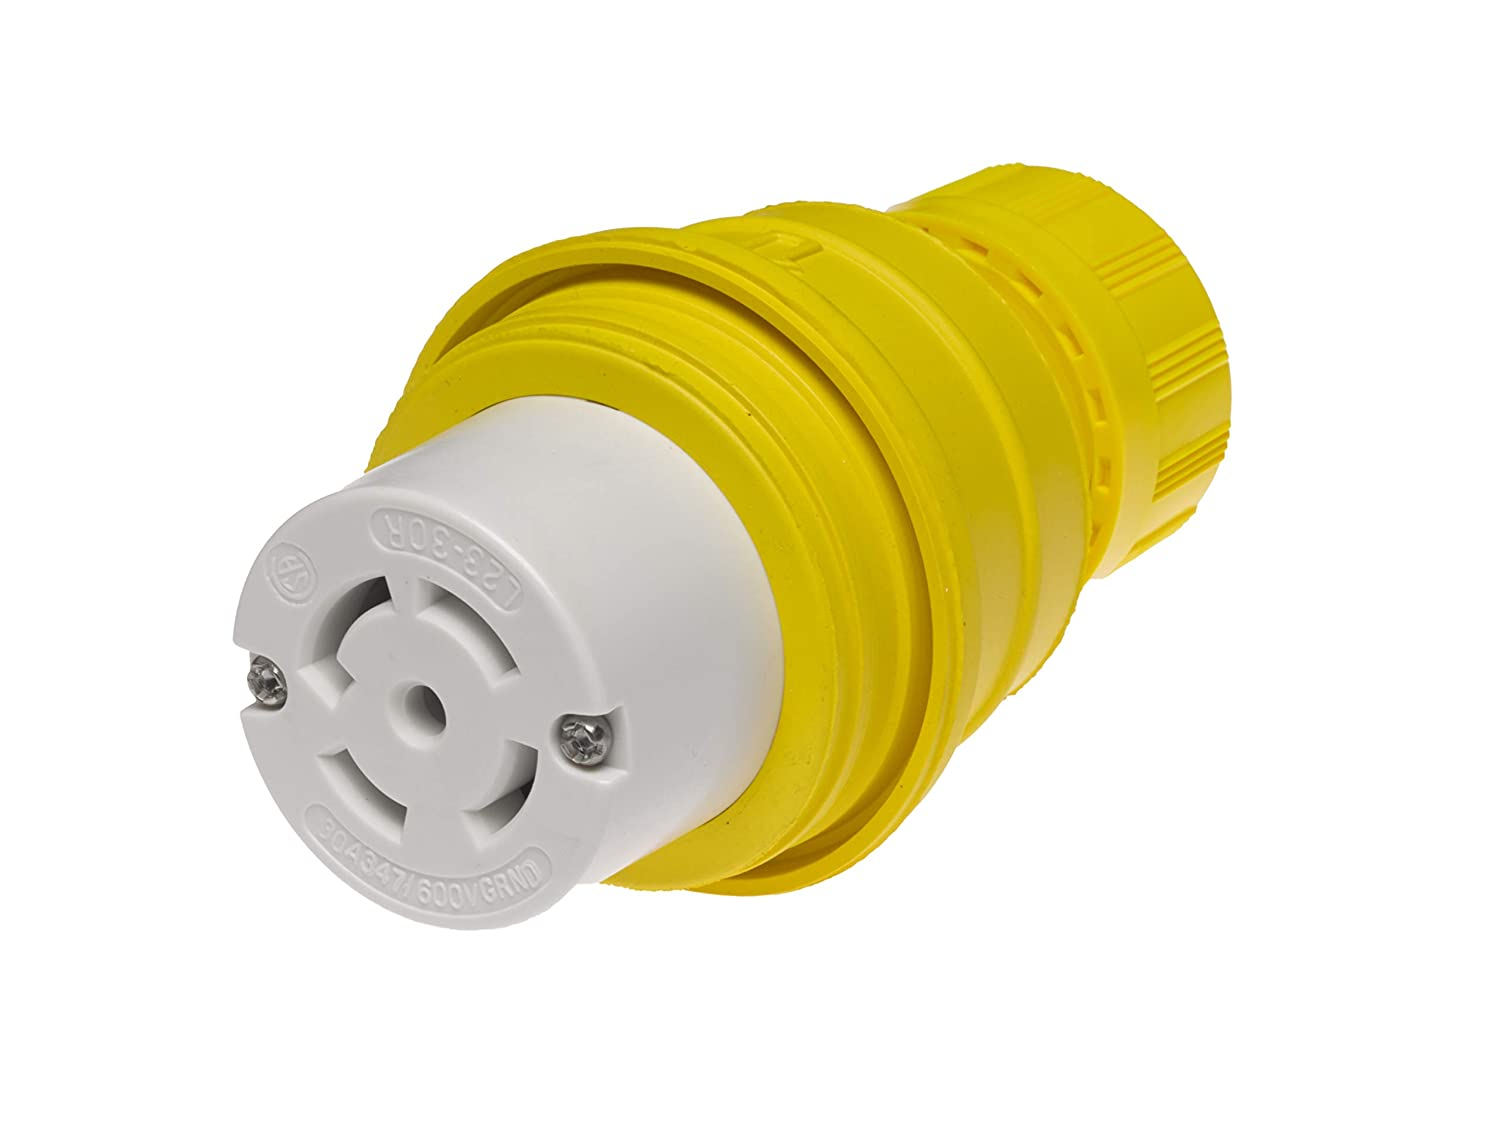 Fees OFFer free Woodhead 29W83MB Watertite Wet Blade Connector Location Locking